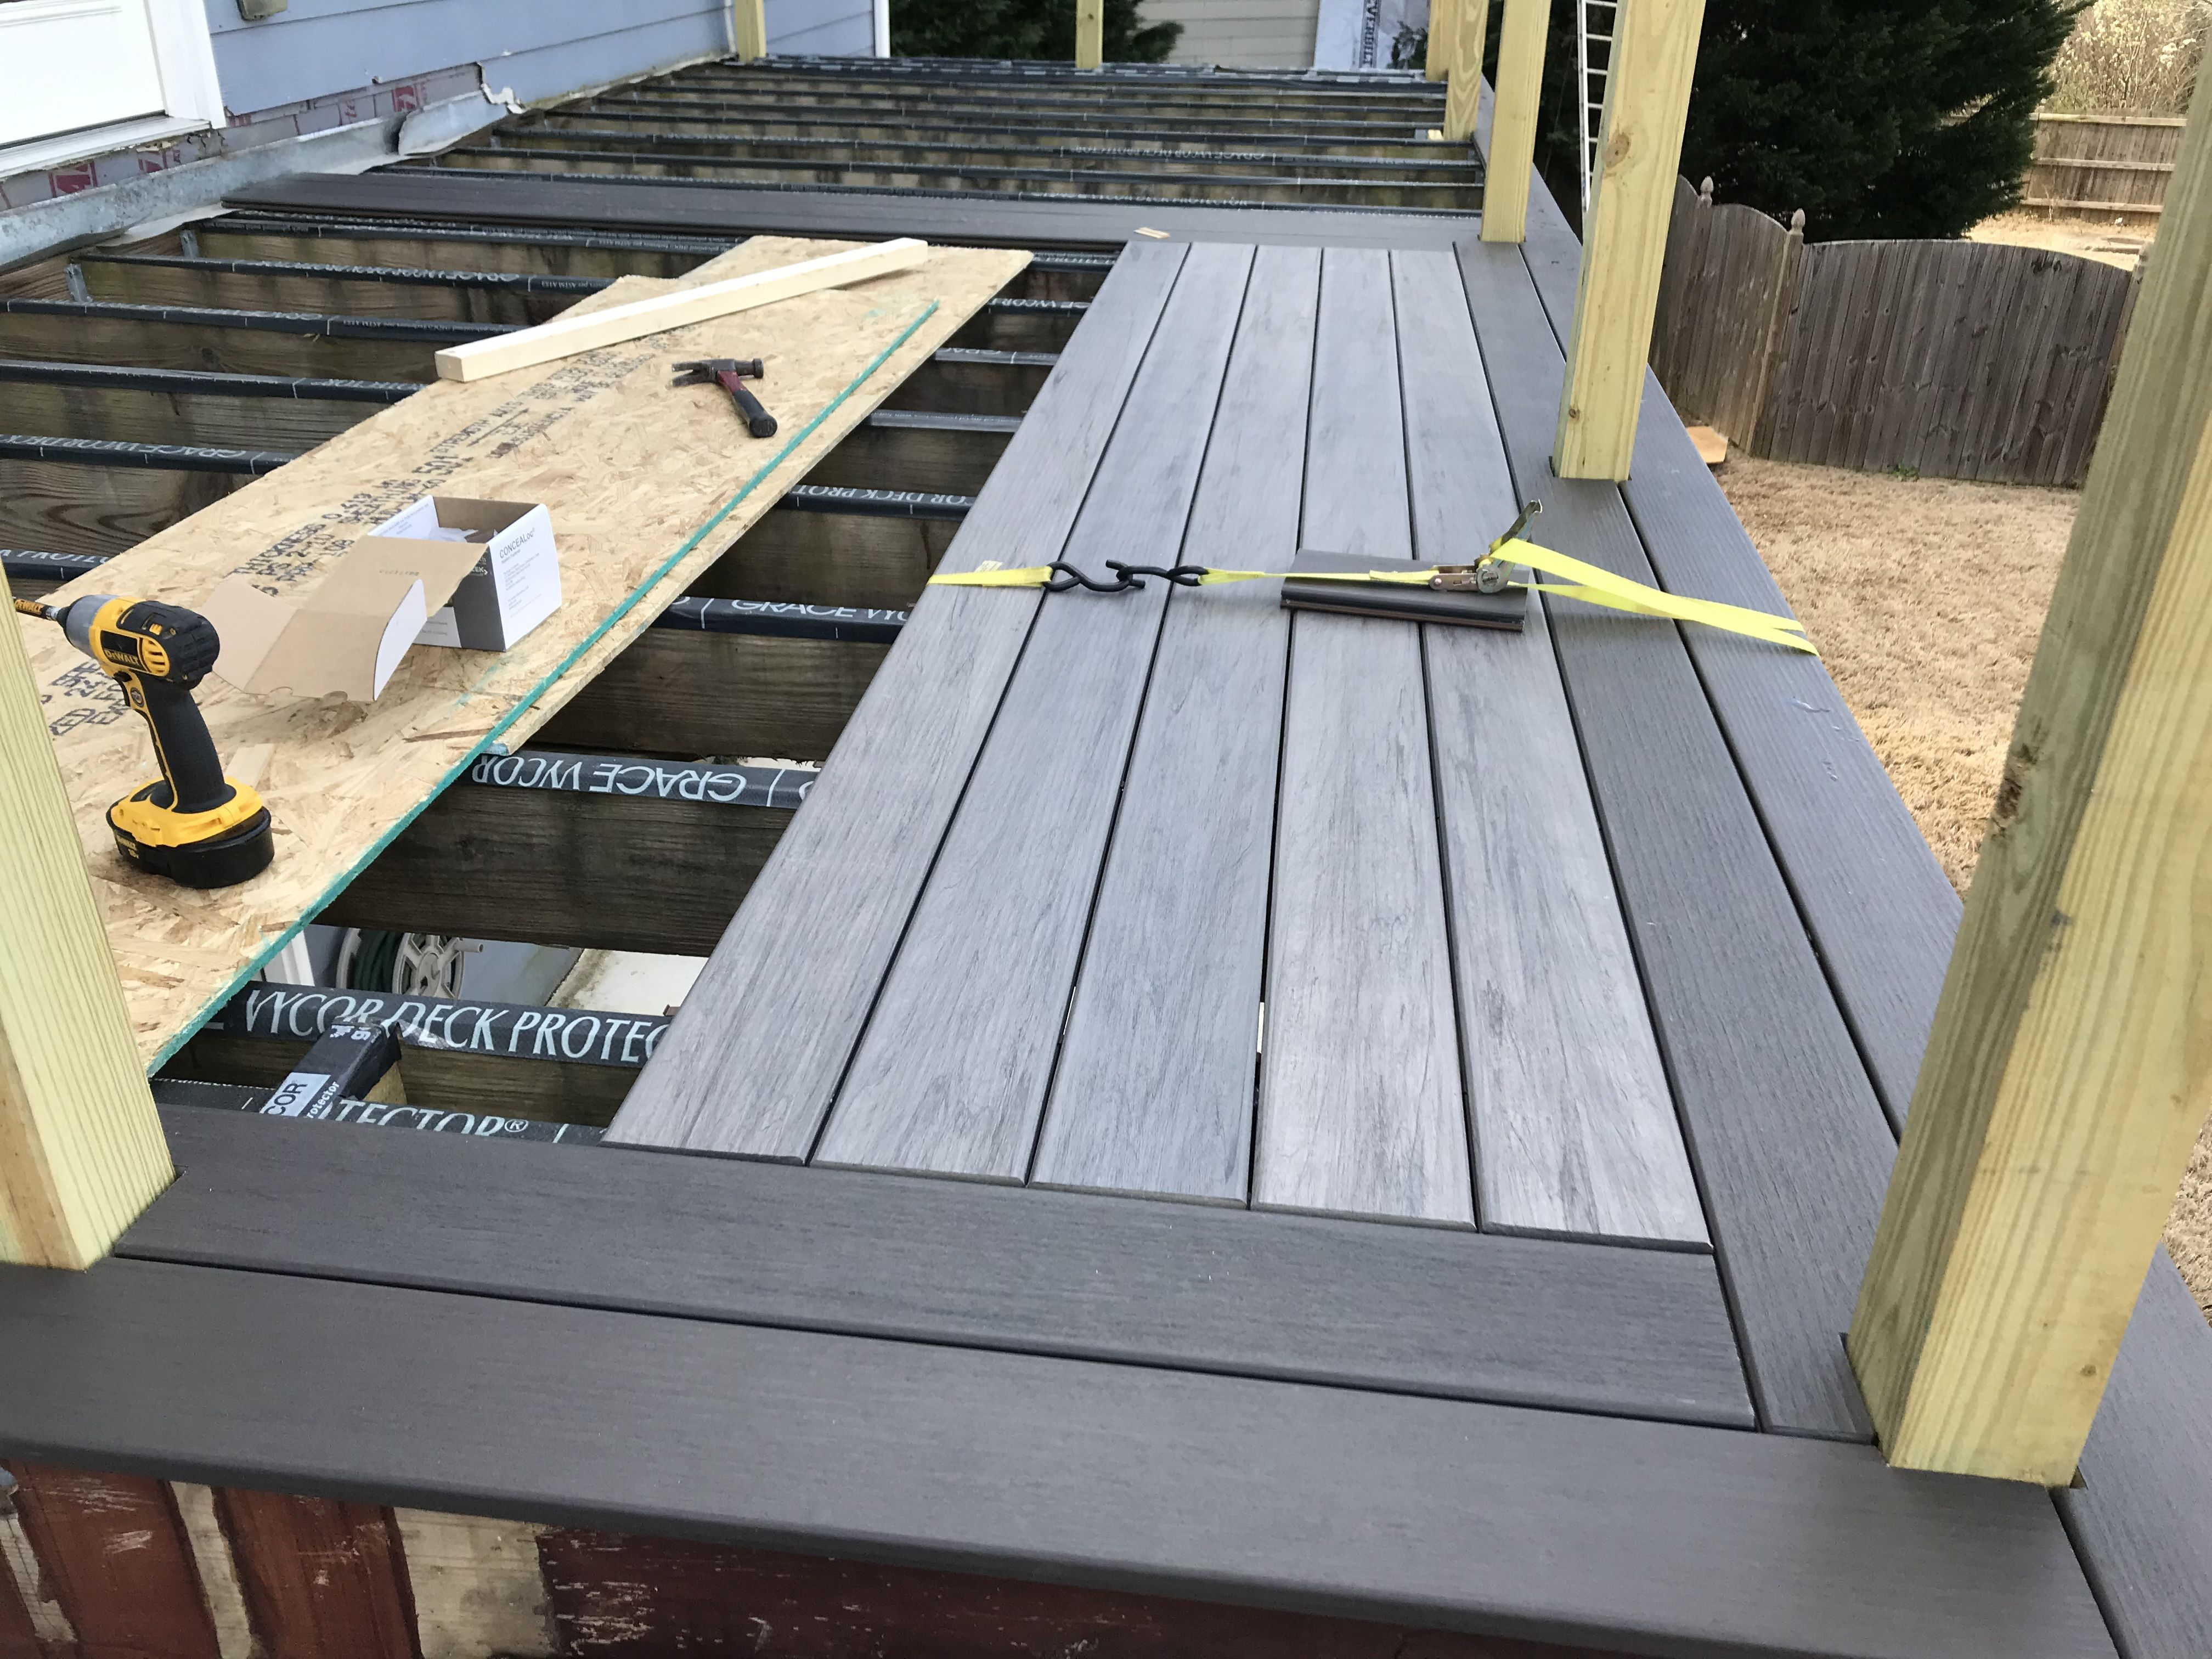 Installing Timbertech Legacy Composite Deck Boards In Espresso And Ash Deck Flooring Decks Backyard Deck Remodel